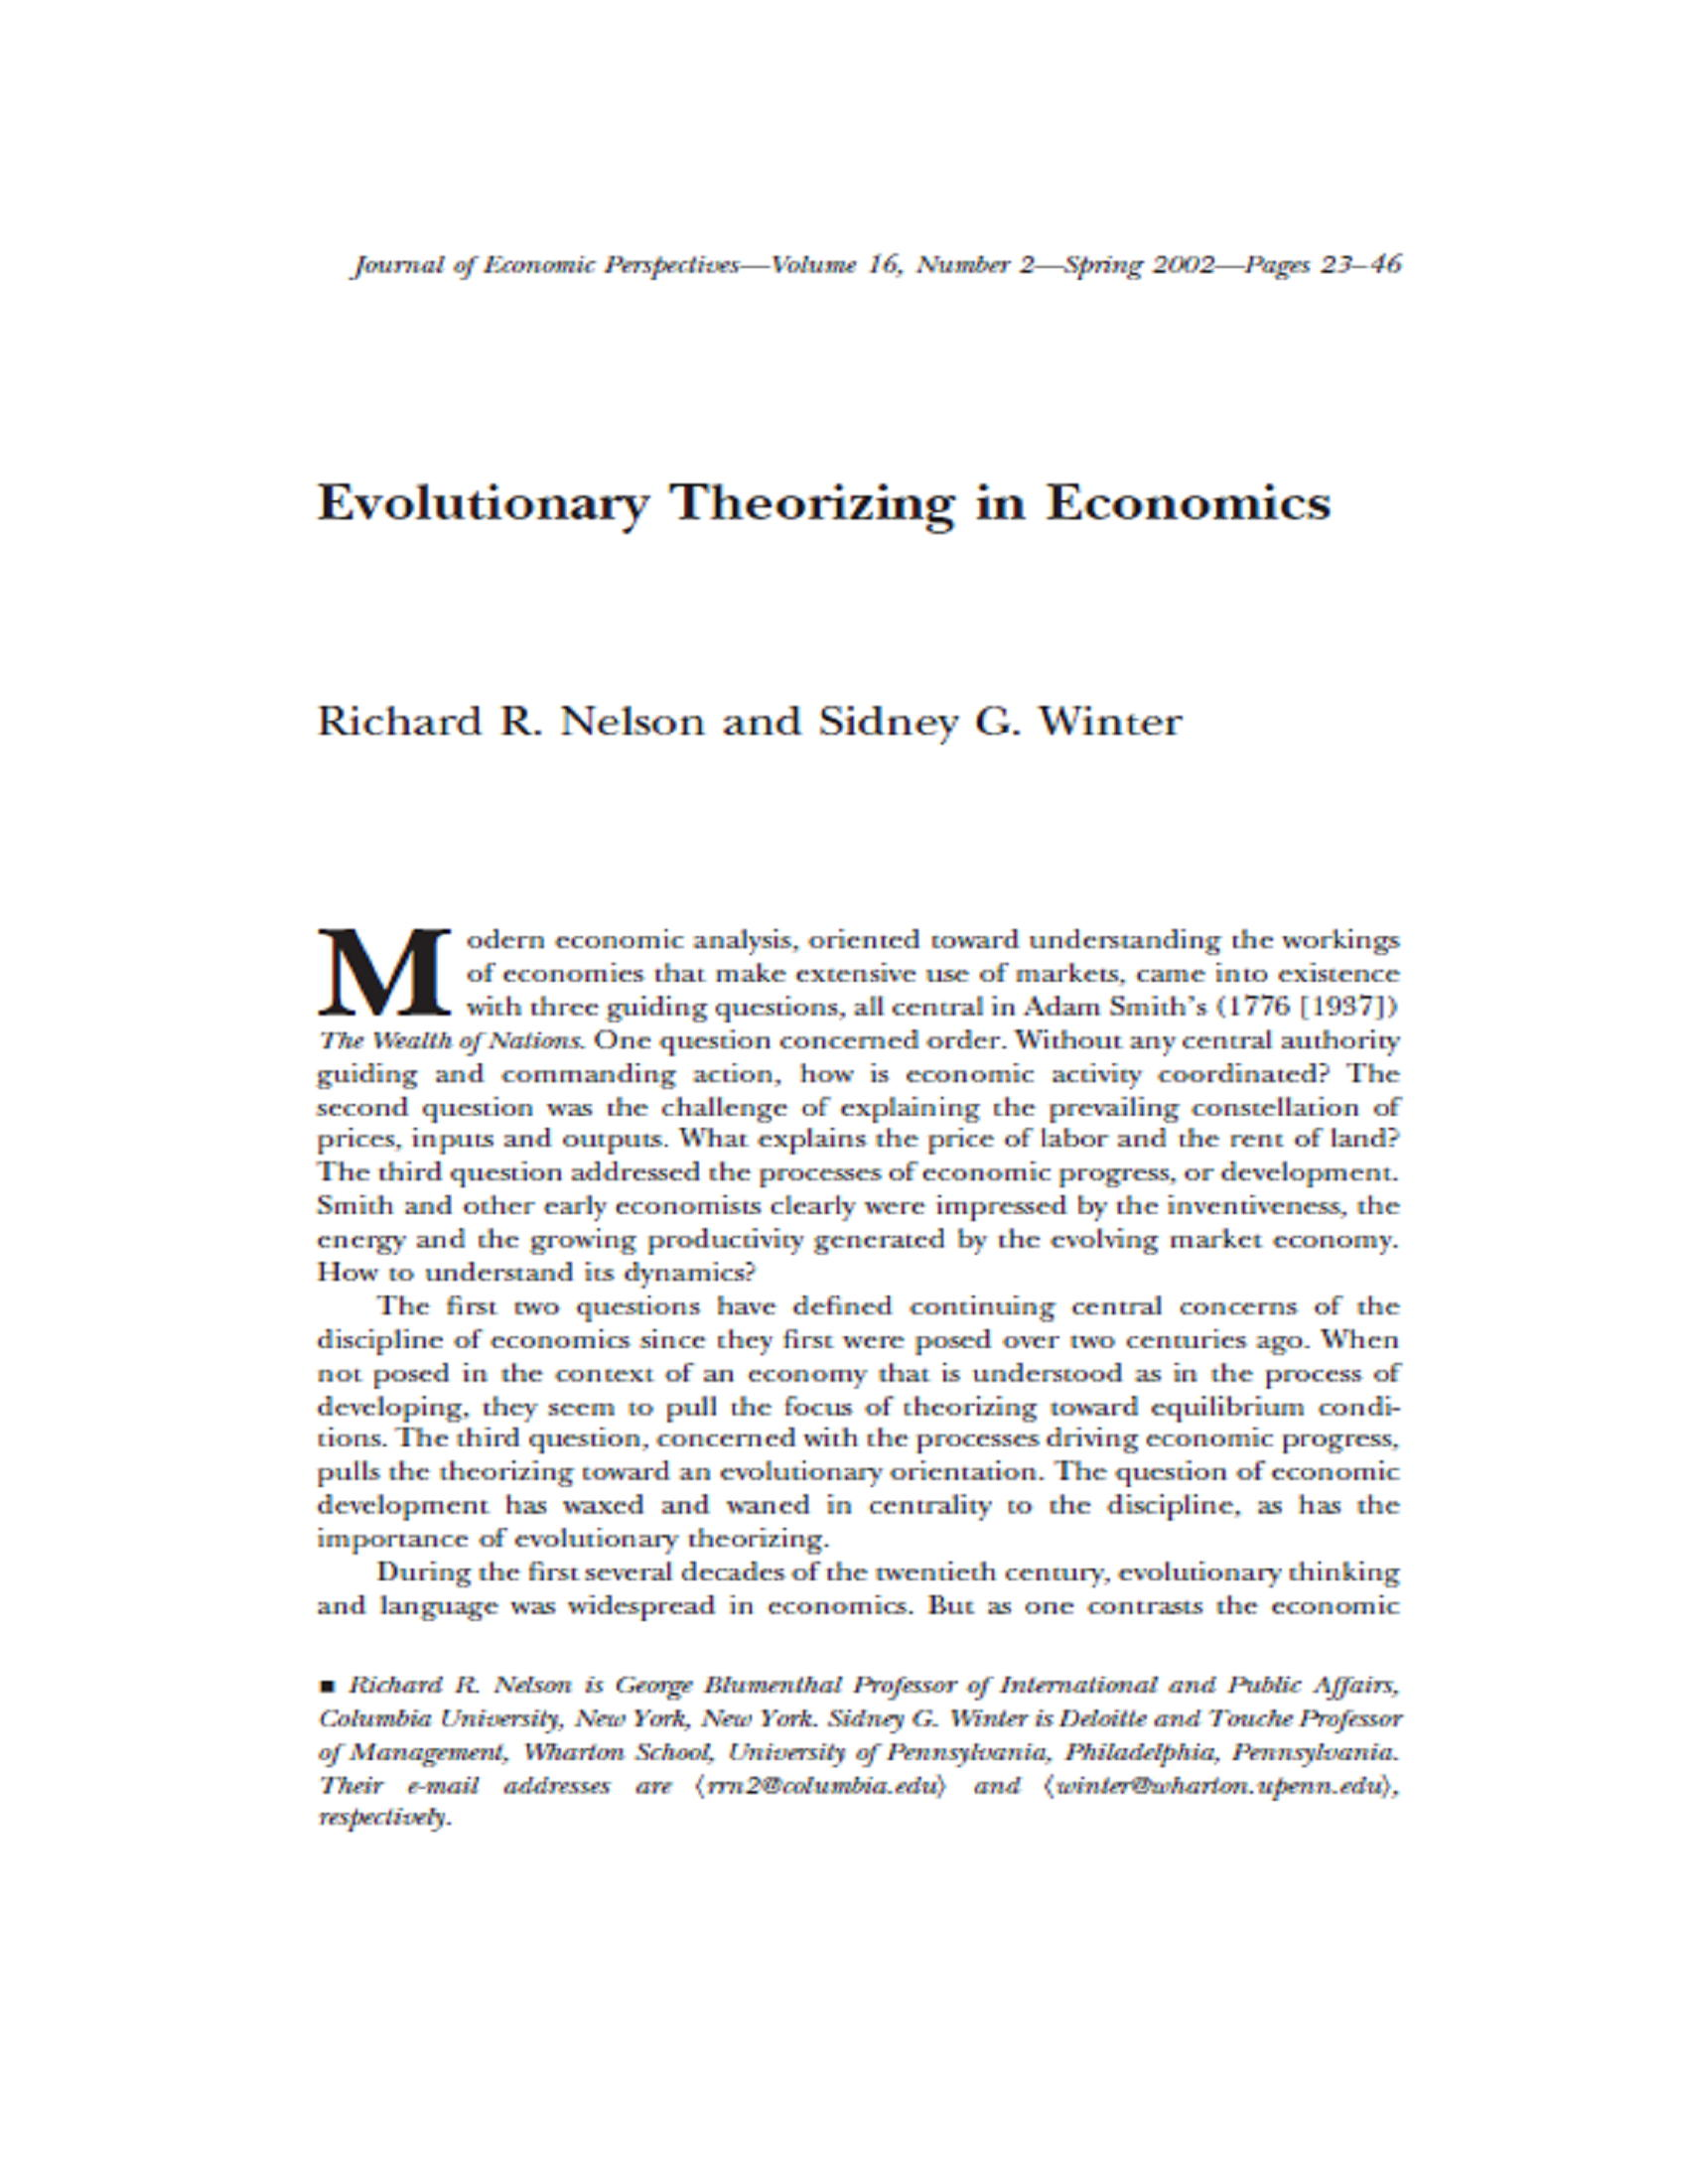 Evolutionary Theorizing in Economics 24